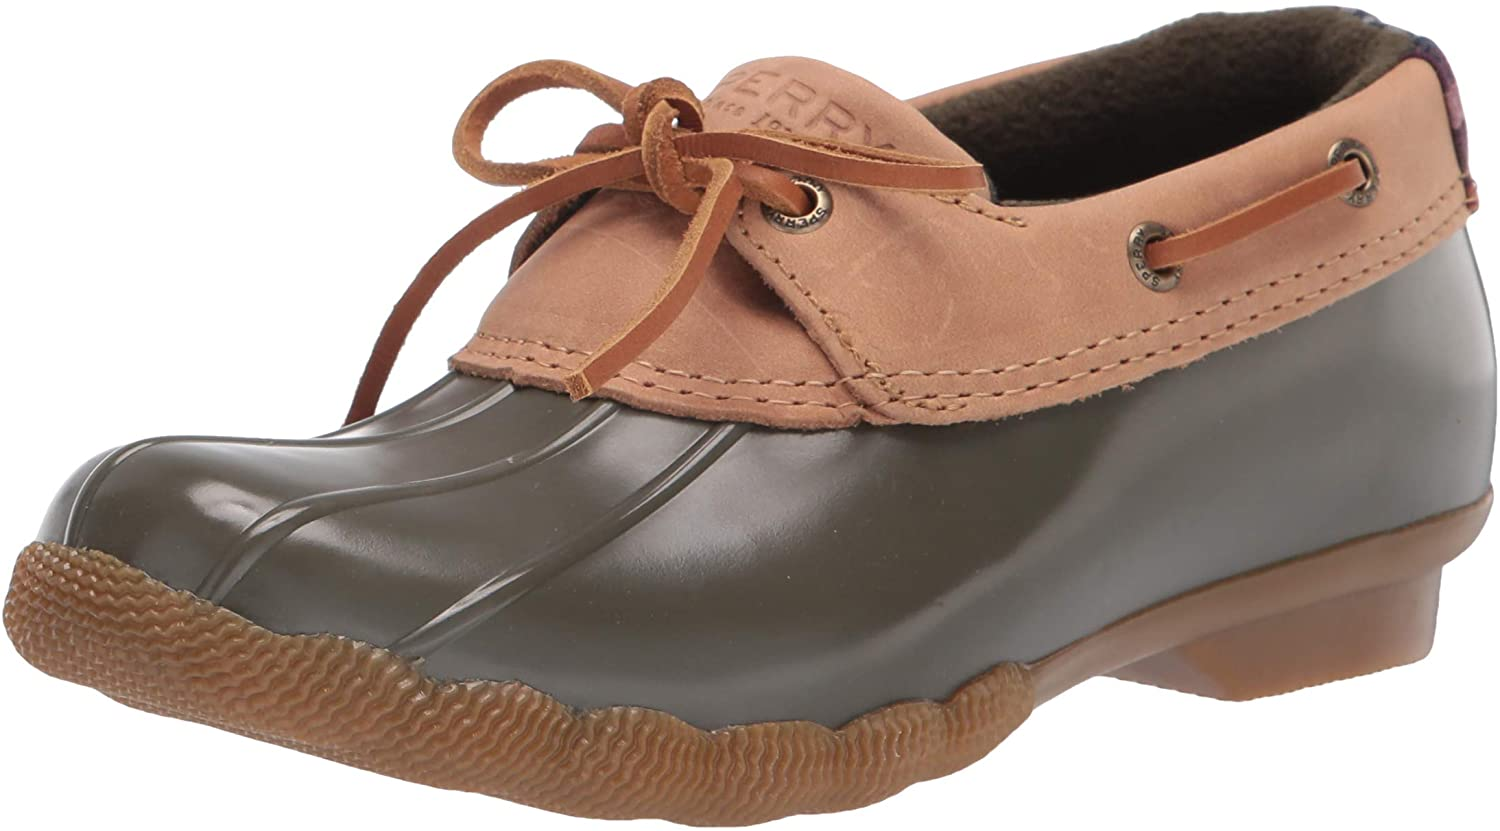 Sperry Ranking TOP9 Women's Ranking integrated 1st place Saltwater 1-Eye Boot Rain